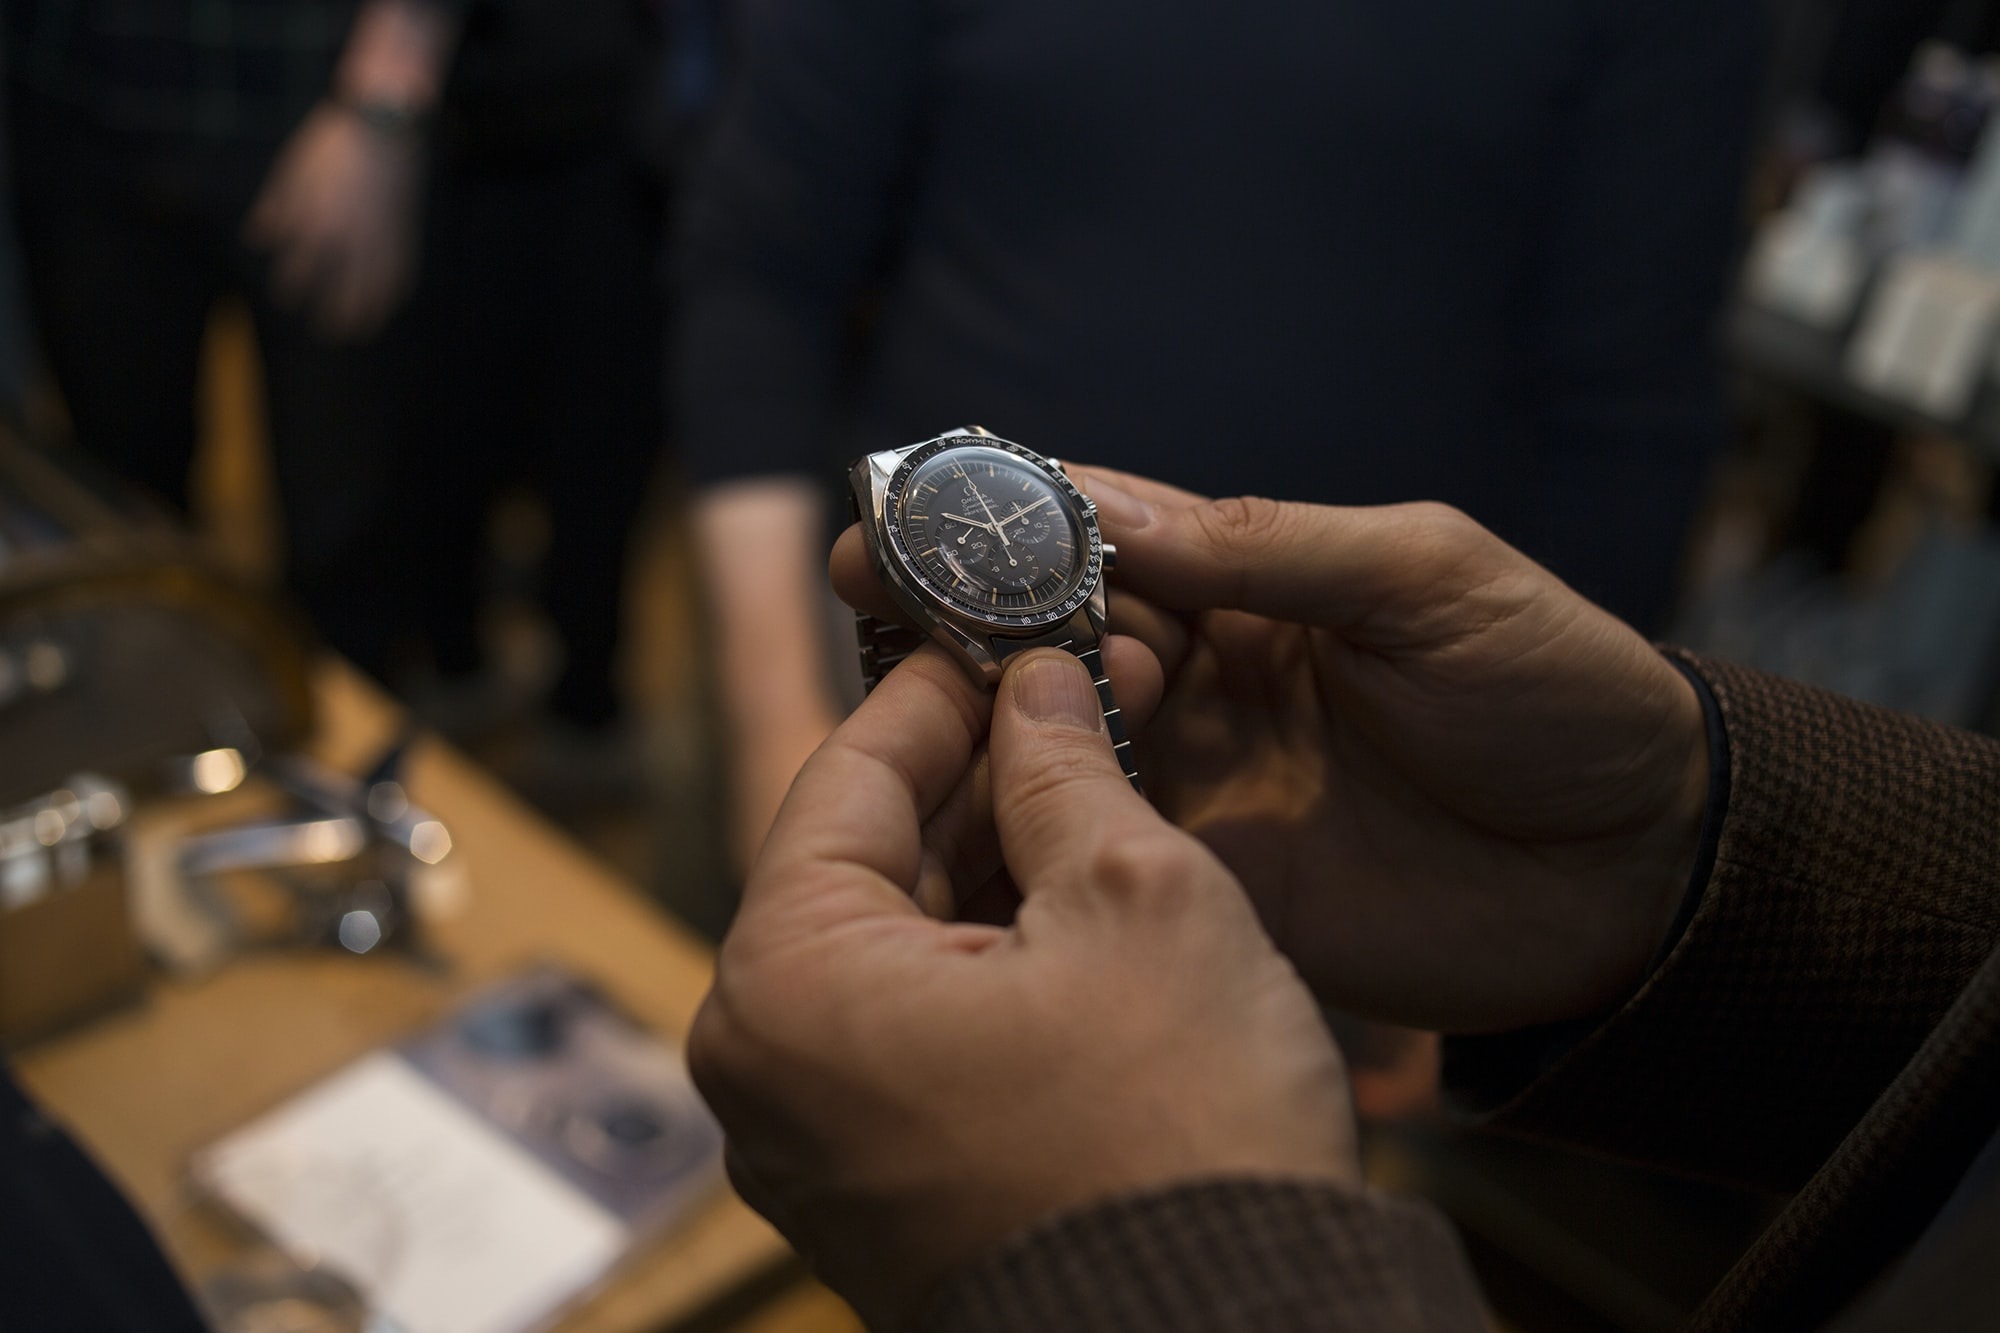 Photo Report: The HODINKEE Summer Kick-Off Party At Todd Snyder In New York City Photo Report: The HODINKEE Summer Kick-Off Party At Todd Snyder In New York City  20011169 copy